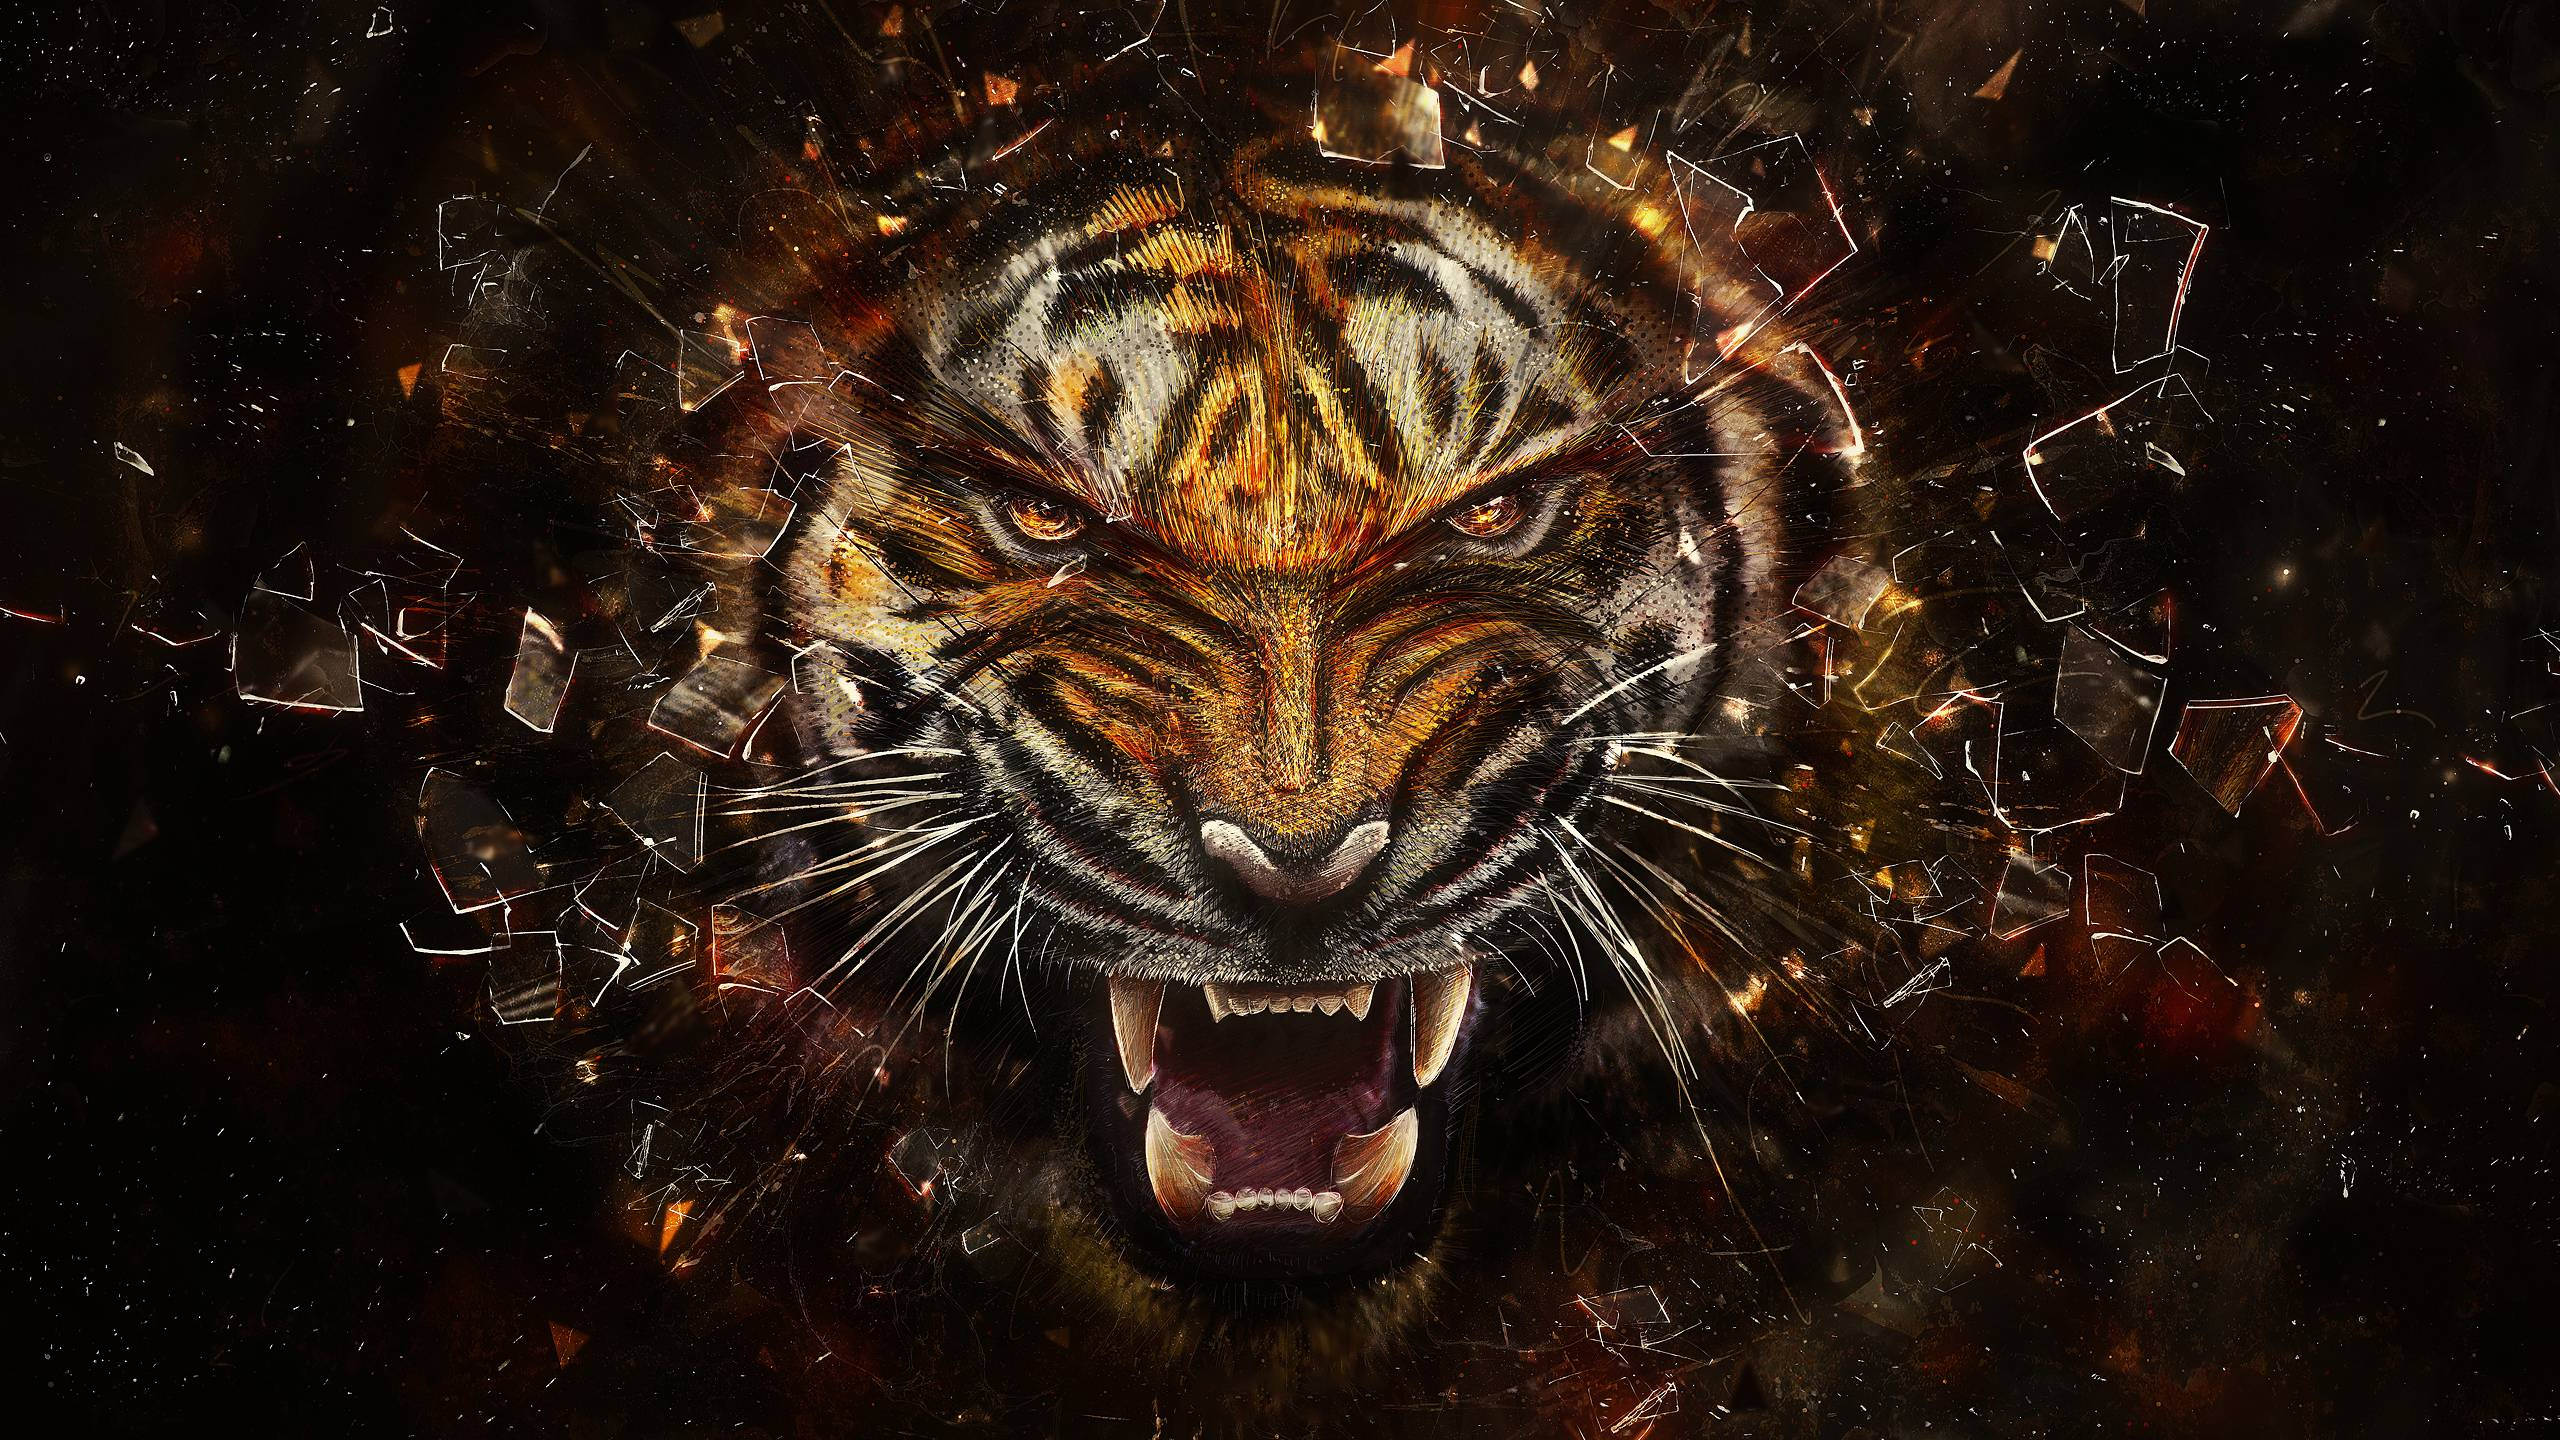 Super Cool Animal Wallpapers Top Free Super Cool Animal Backgrounds Wallpaperaccess